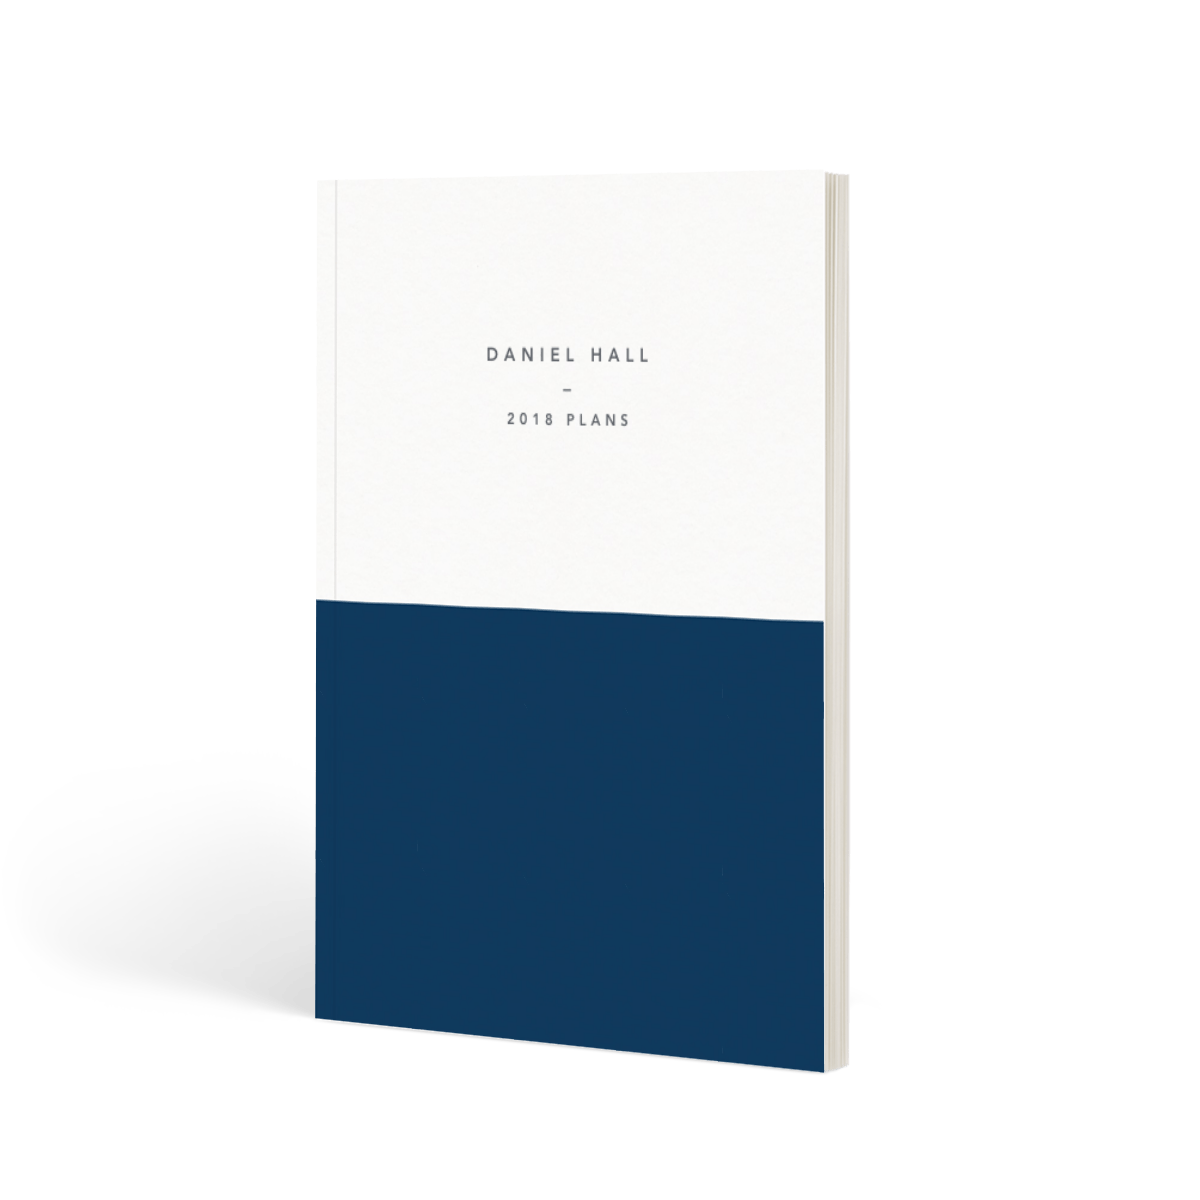 Https%3a%2f%2fwww.papier.com%2fproduct image%2f30248%2f7%2fdemi navy 7628 front 1538396454.png?ixlib=rb 1.1